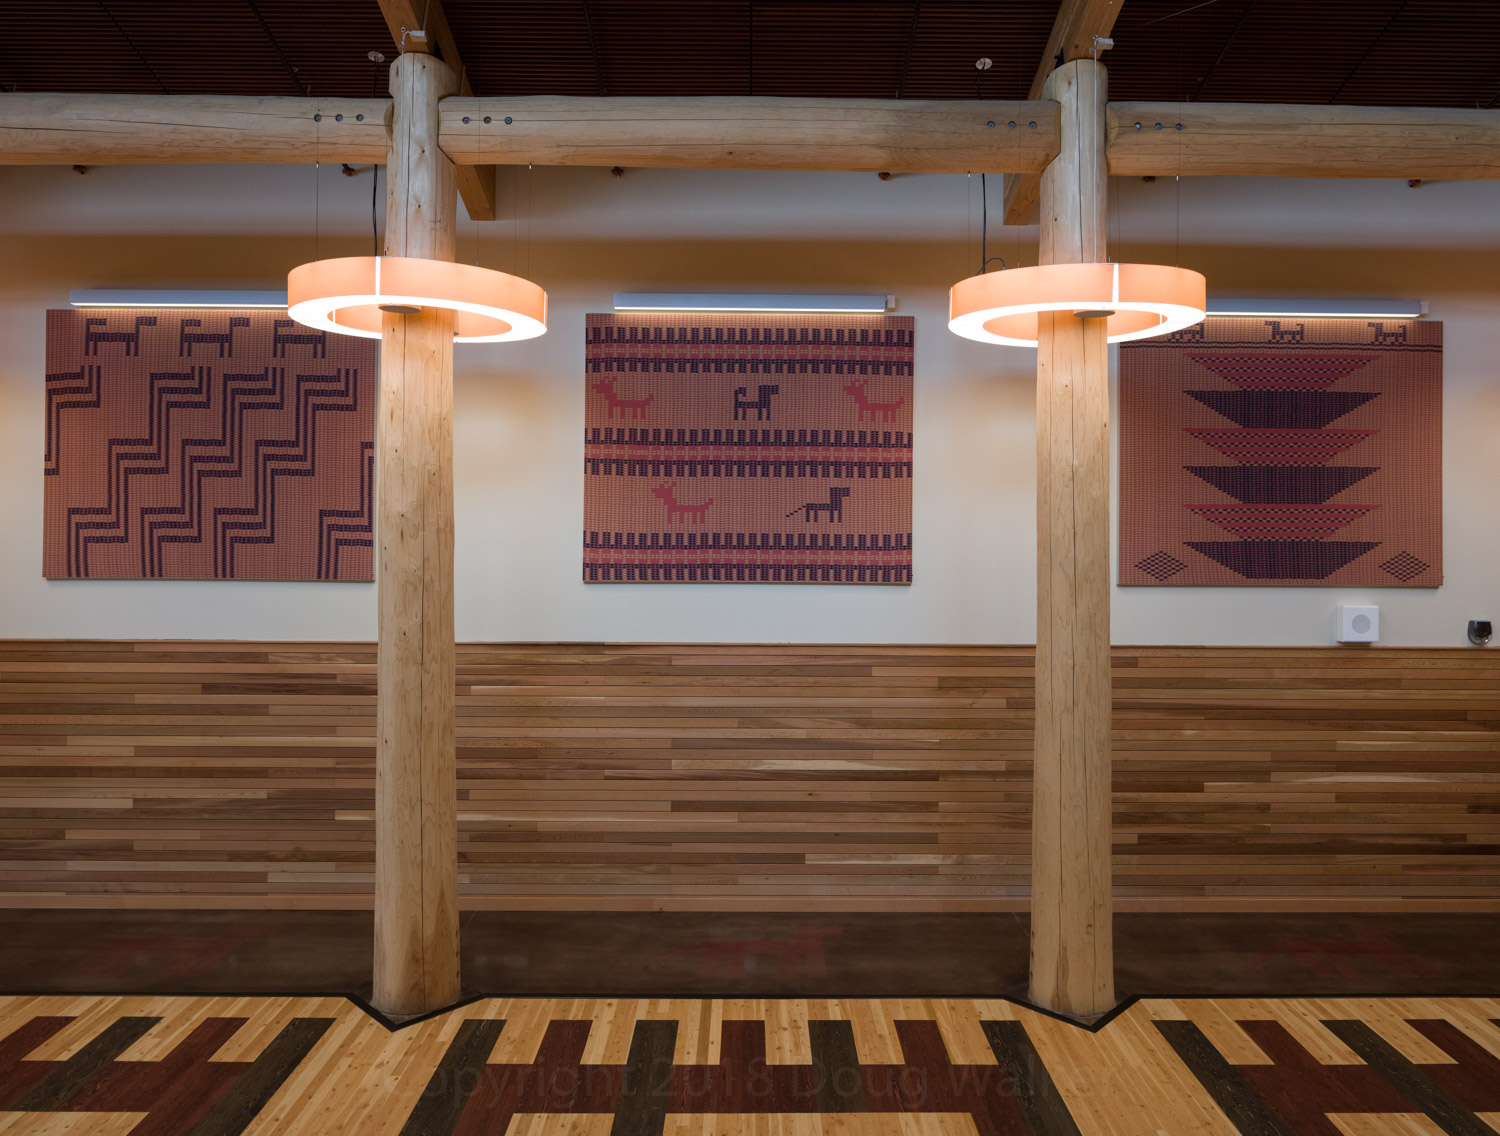 Gathering space features artwork using traditional Skokomish basket patterns,